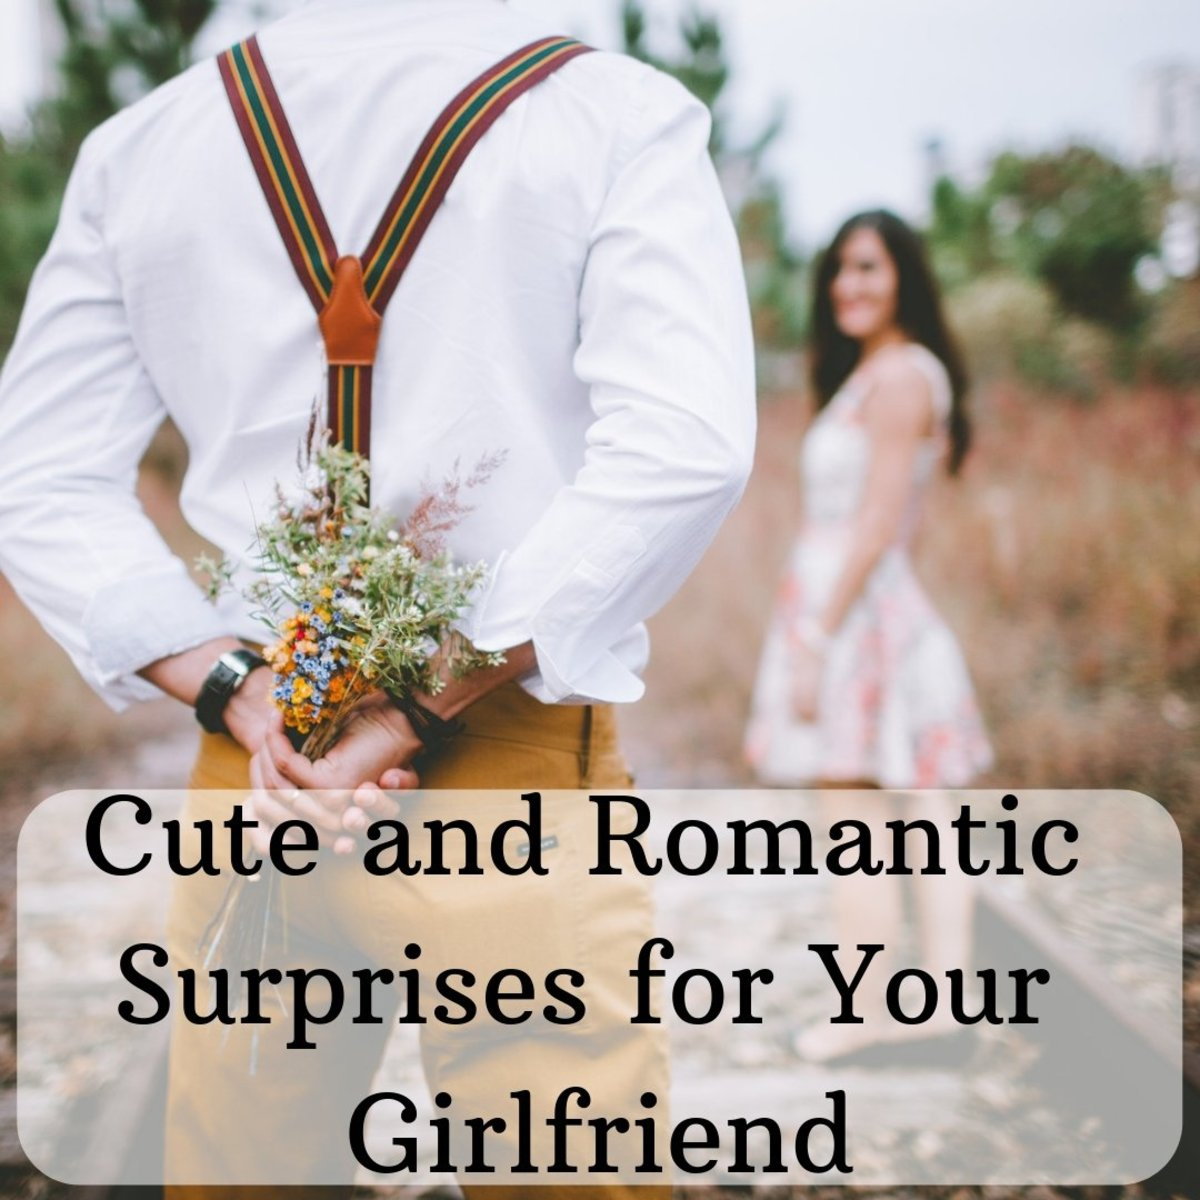 Here Are Some Great Surprises For Your Girlfriend That She Will Truly Enjoy